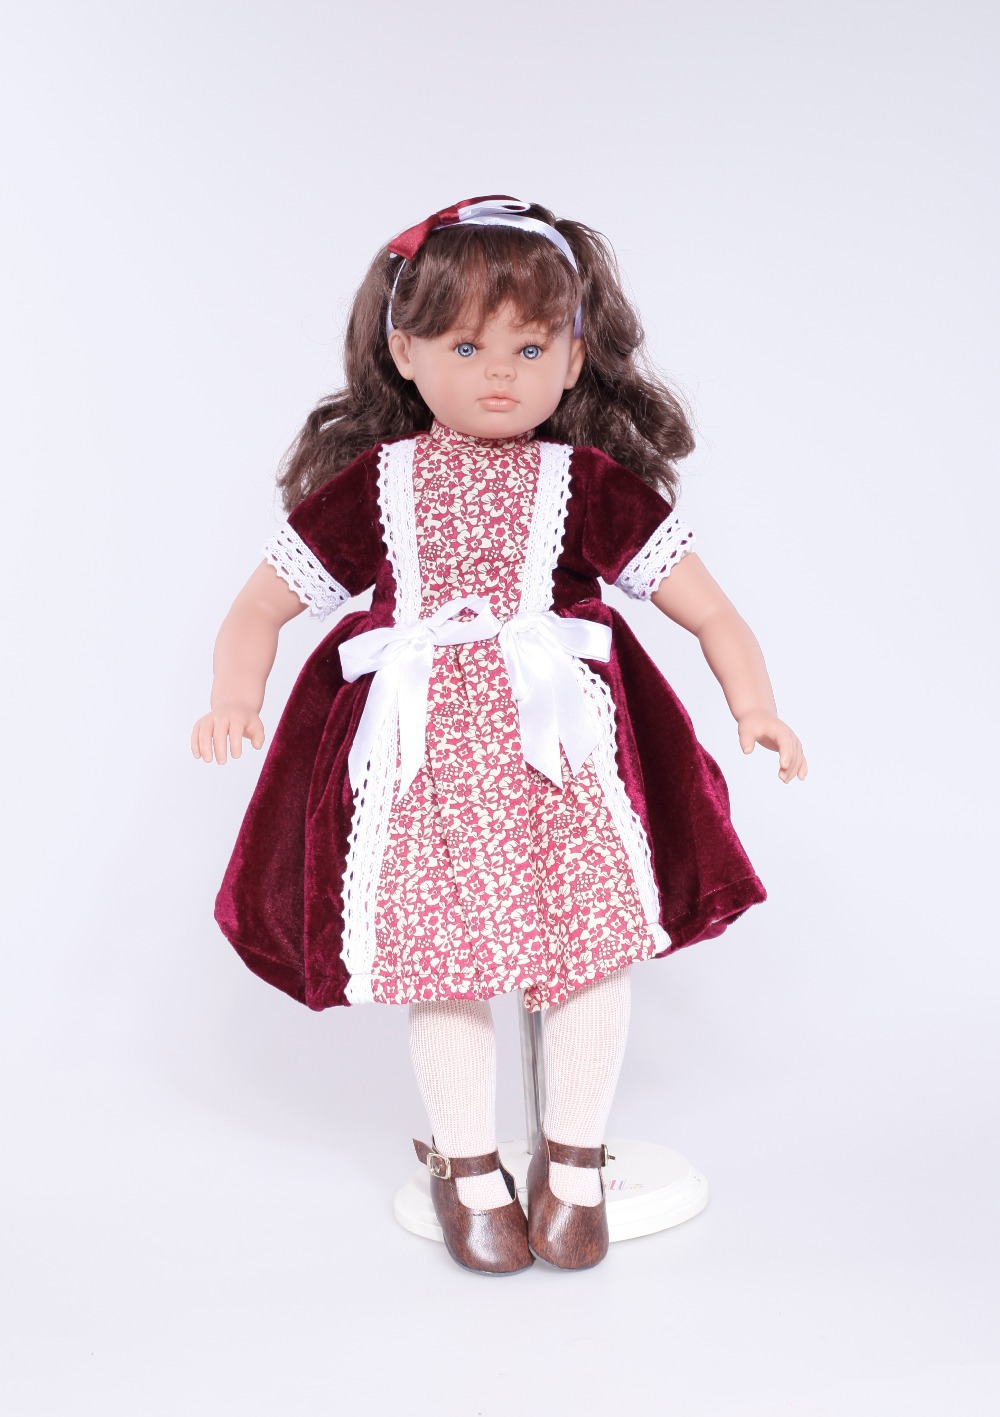 2015 collection Lovely Princess Doll Classic Style 22inches Beautiful Newborn Toys Full Vinyl Doll Rooted Fiber